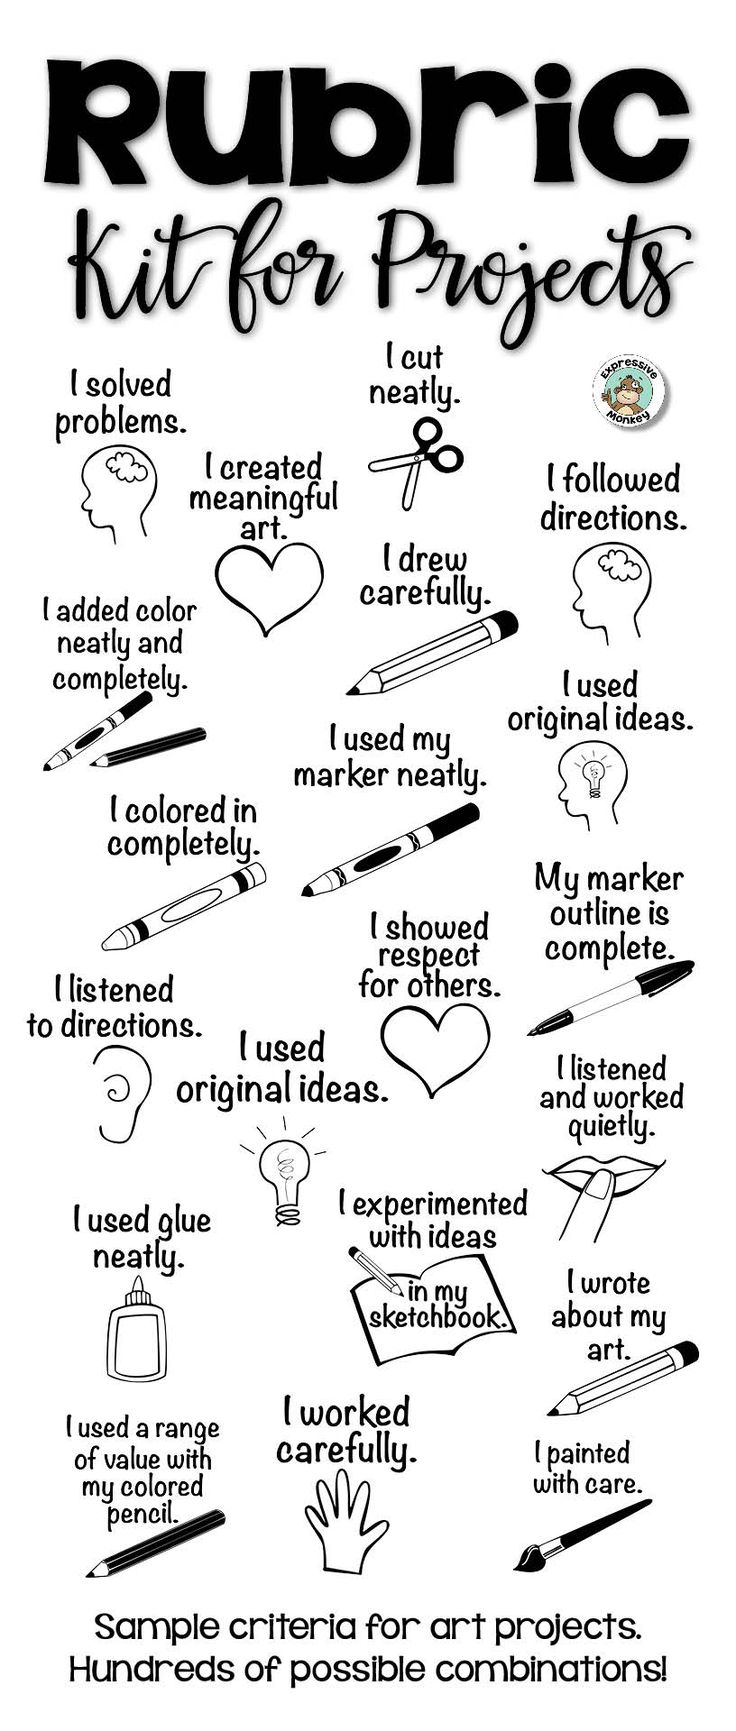 Illustrated criteria makes filling out rubrics easier and better for visual learners. - art rubric - getting quality work done - rubric kit - assessing elementary art -